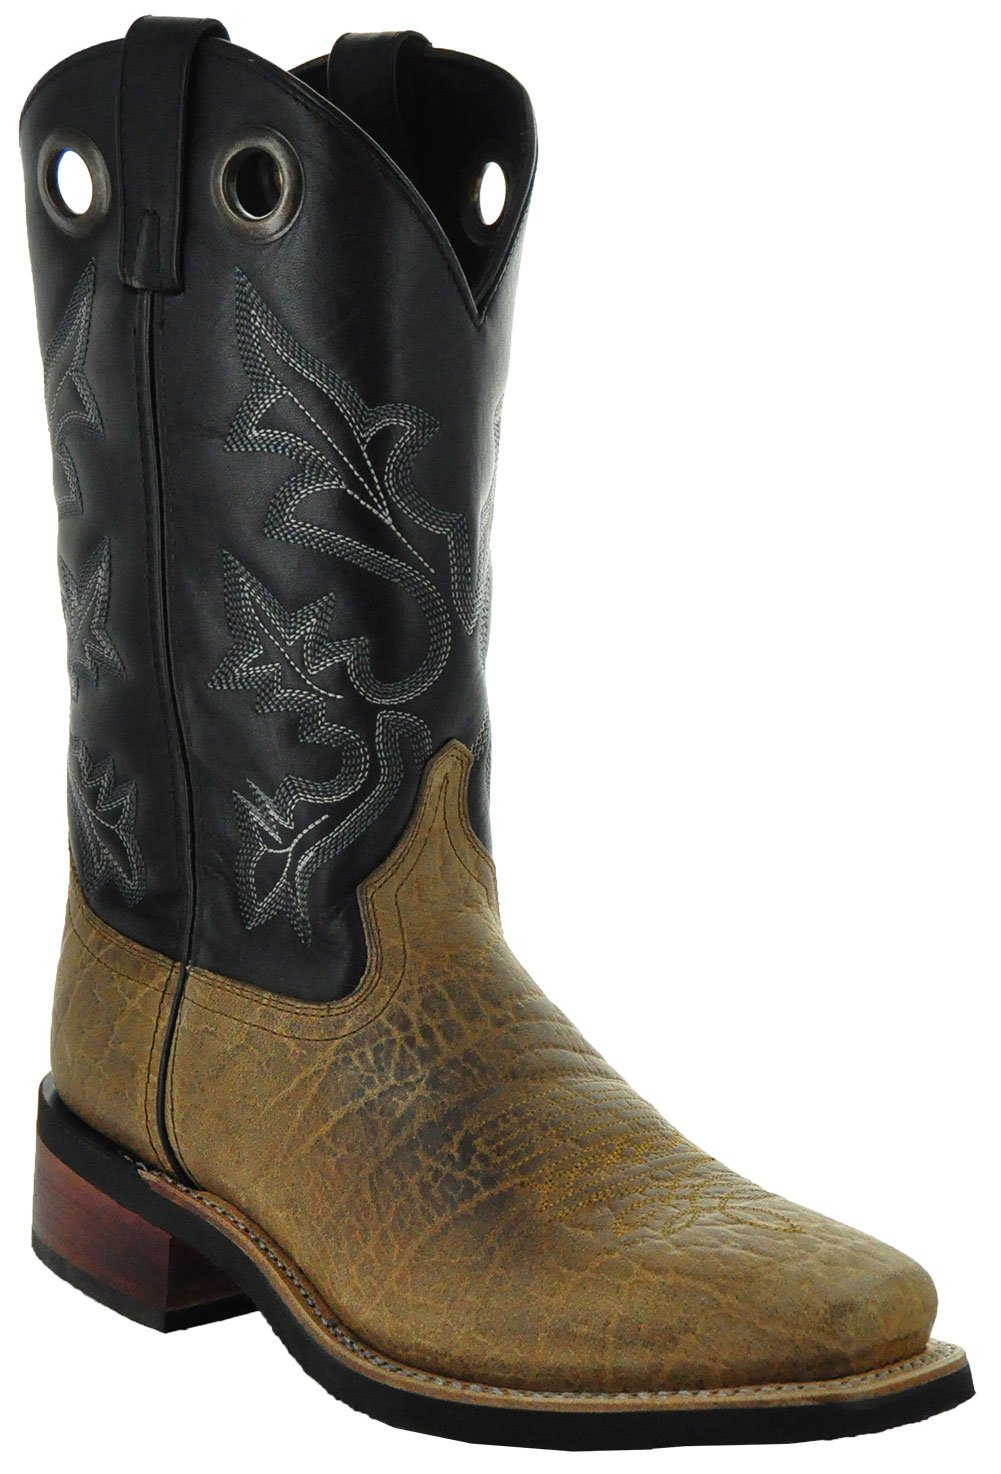 Soto Boots El Dorado Men's Western Square Toe Boots by H3004 (9.5) by Soto Boots